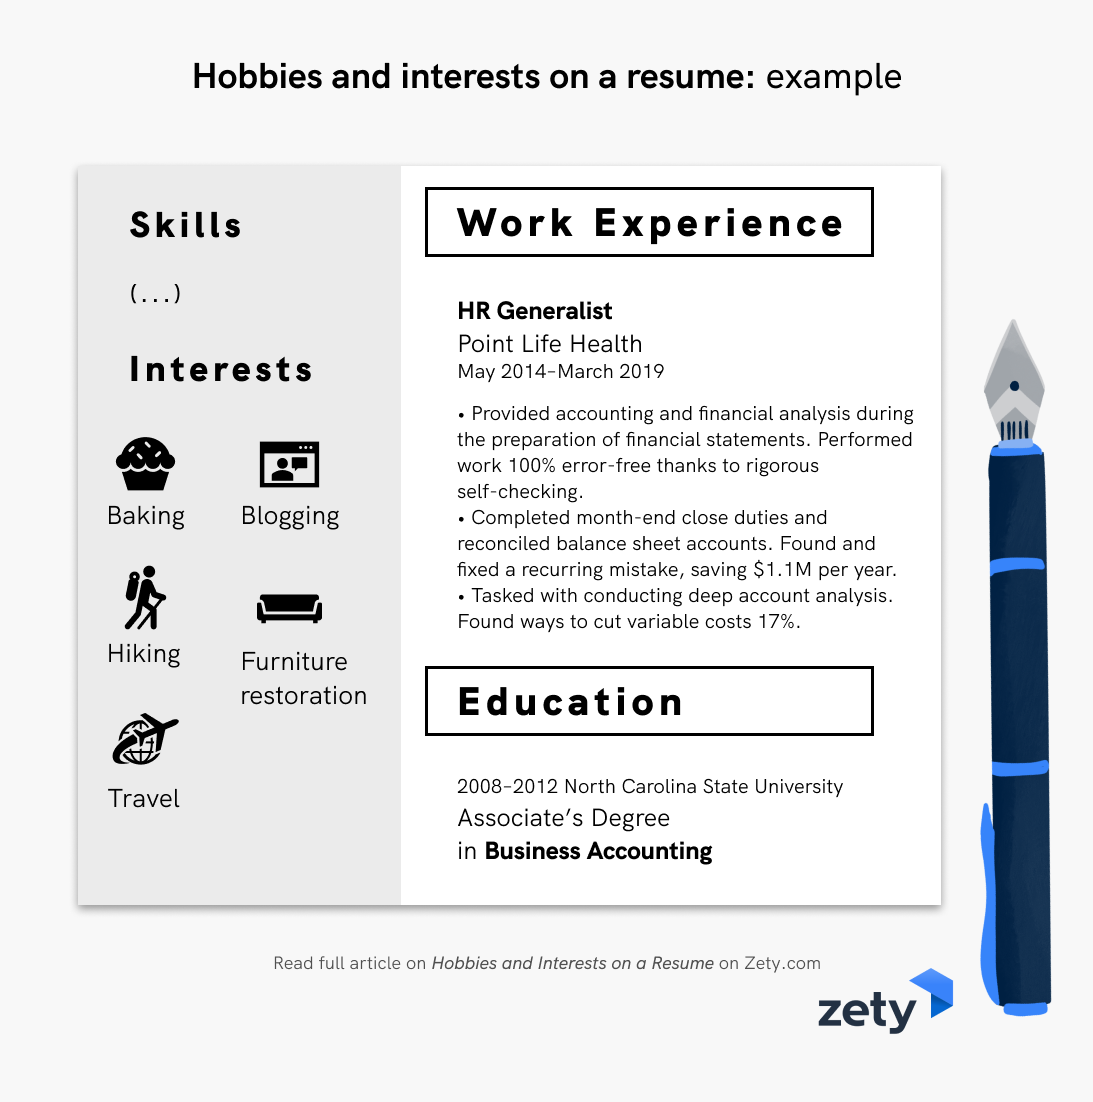 Hobbies And Interests On A Resume Example Job Resume Examples Resume Resume Examples